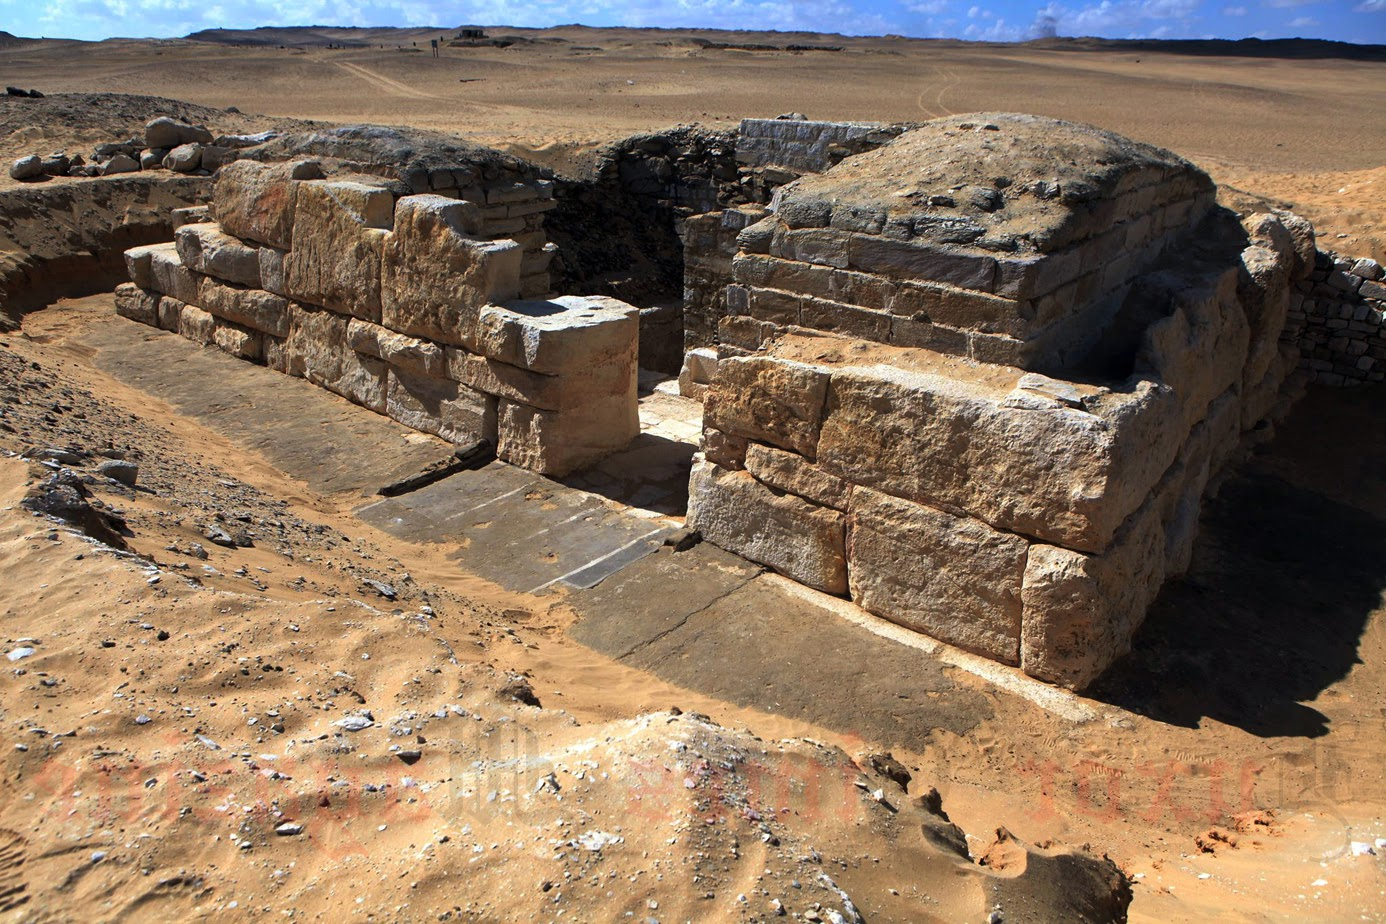 The tomb of Queen Khentkaus III located at the Abu Sir necropolis near Cairo